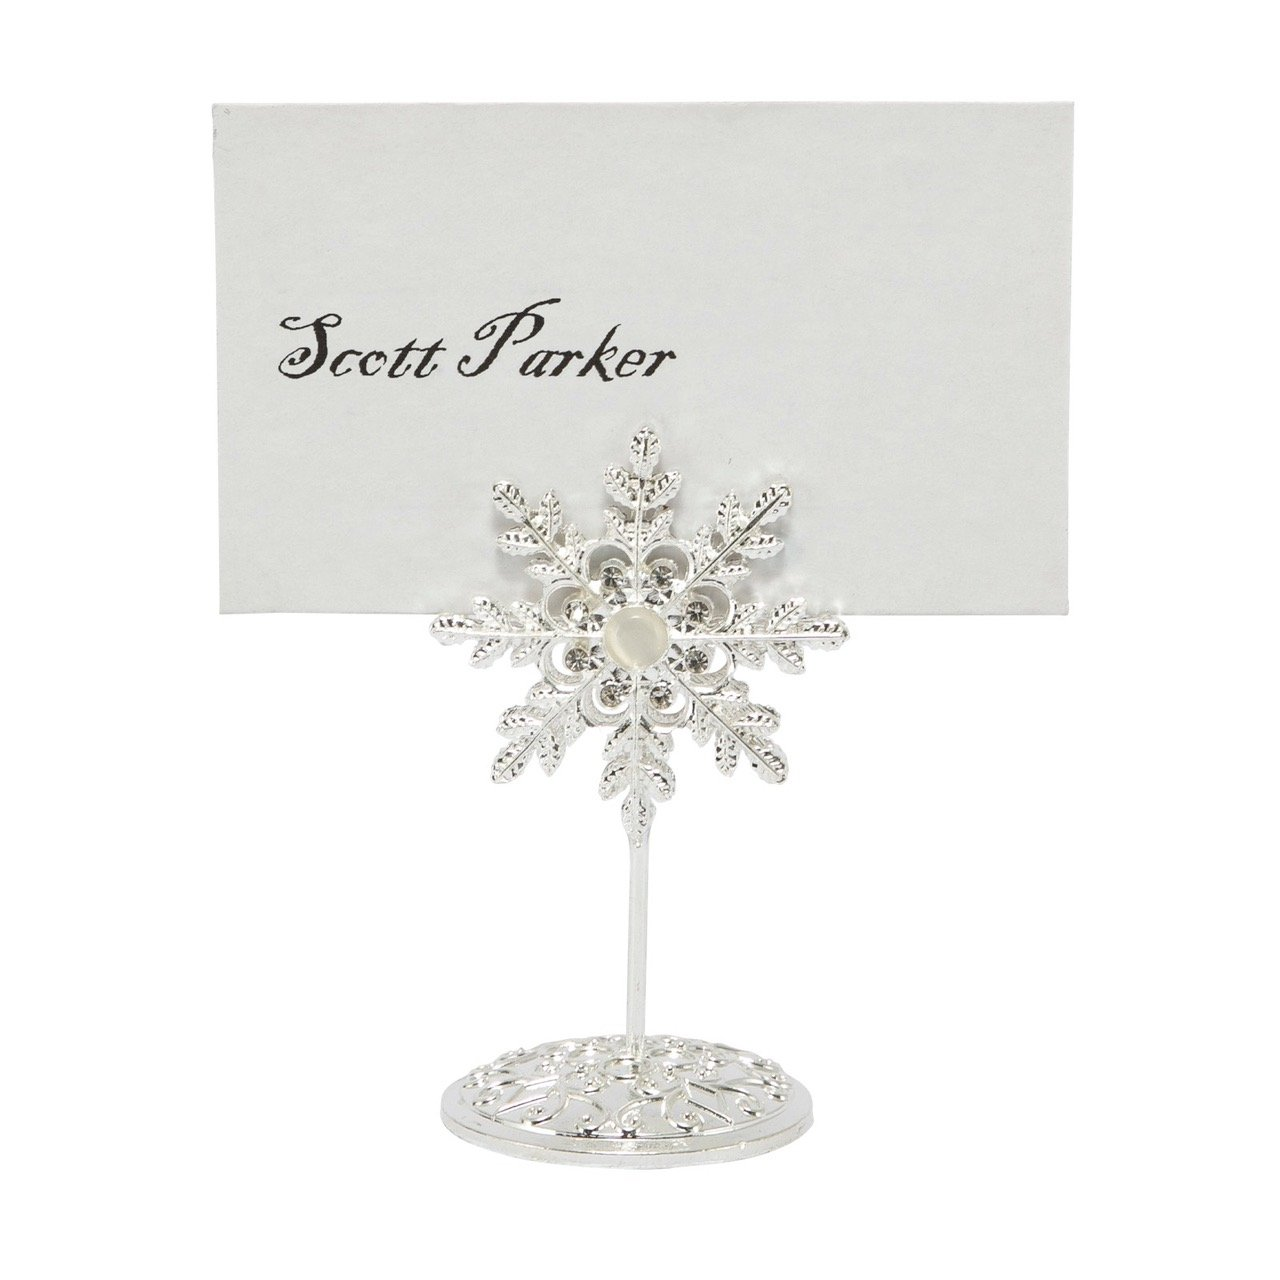 diamante silver jewelled snowflake wedding name card holders 7cm and table number holders 13cm 1 x wedding table number holder large amazoncouk